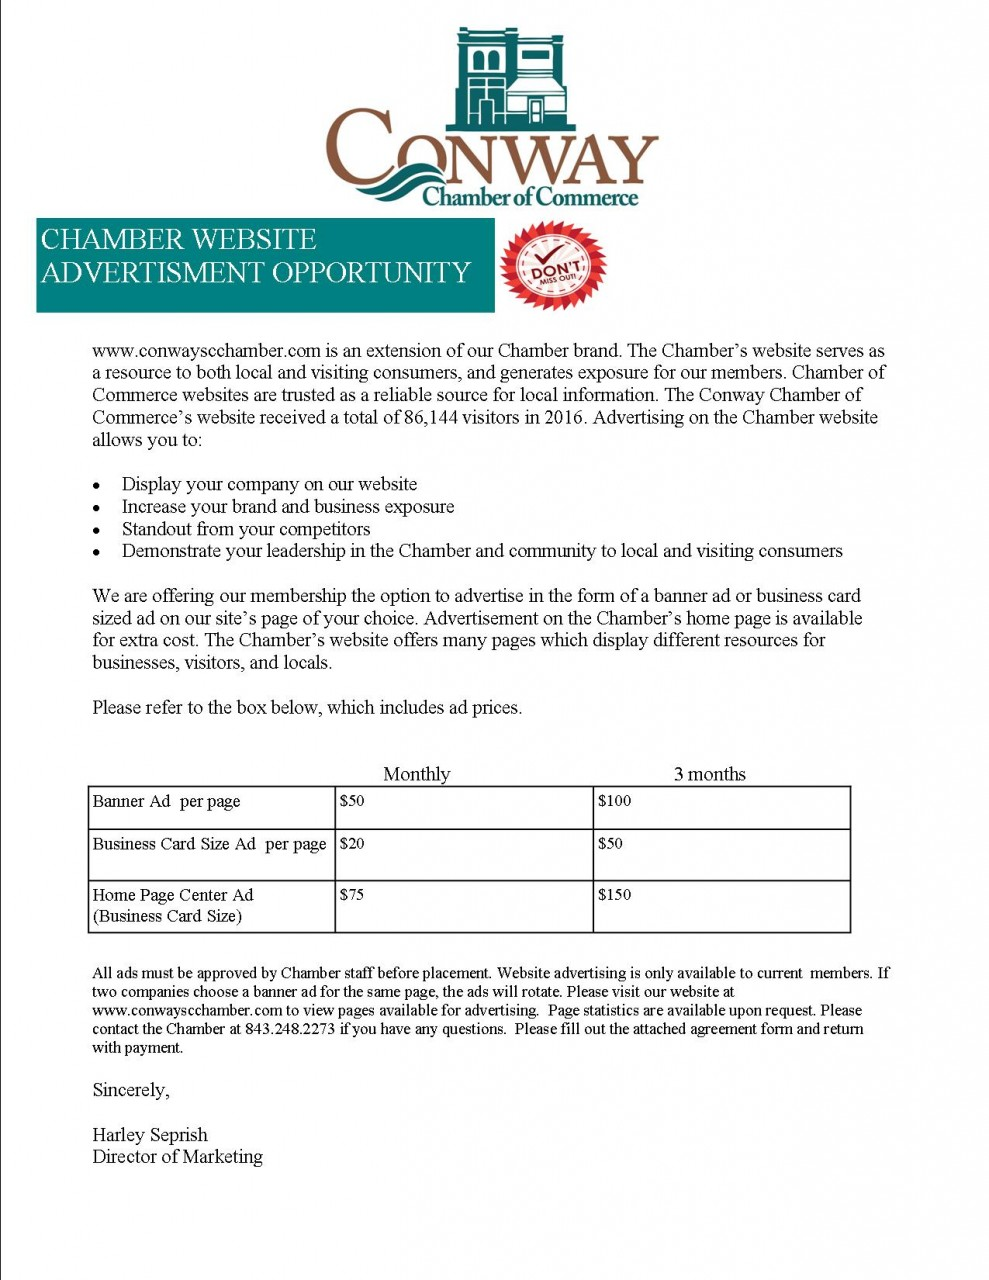 website advertisement opportunity for chamber members conway